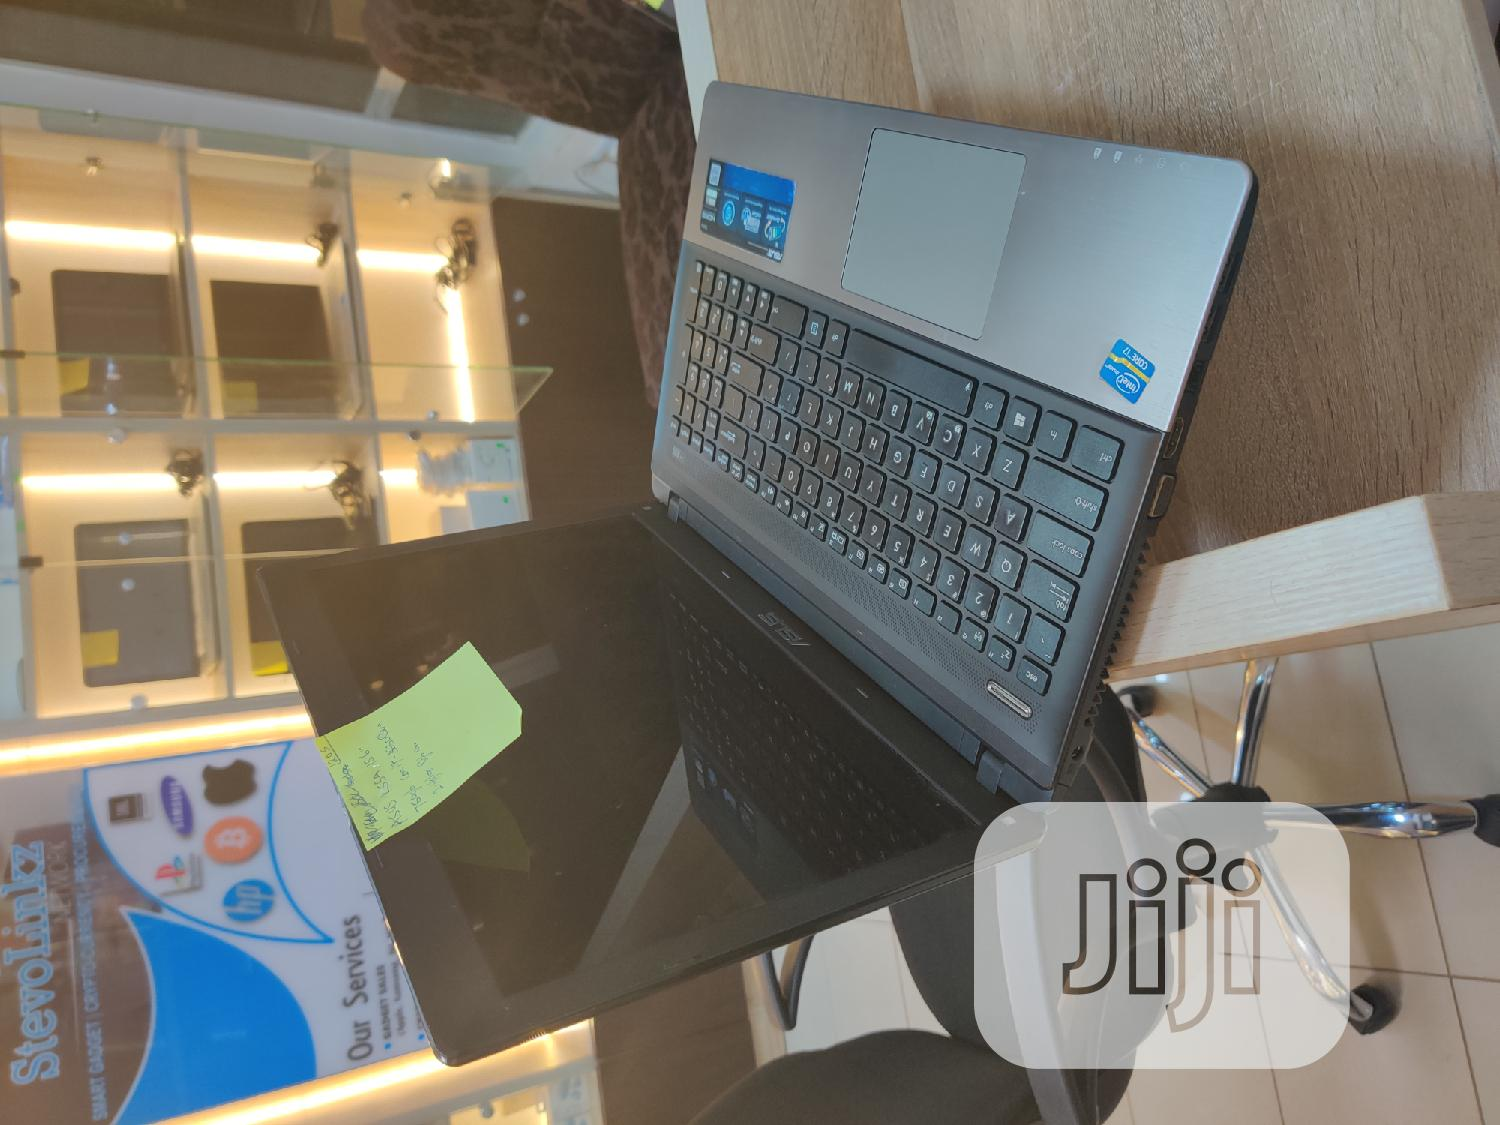 Laptop Asus K55A 8GB Intel Core I7 HDD 750GB | Laptops & Computers for sale in Wuse 2, Abuja (FCT) State, Nigeria